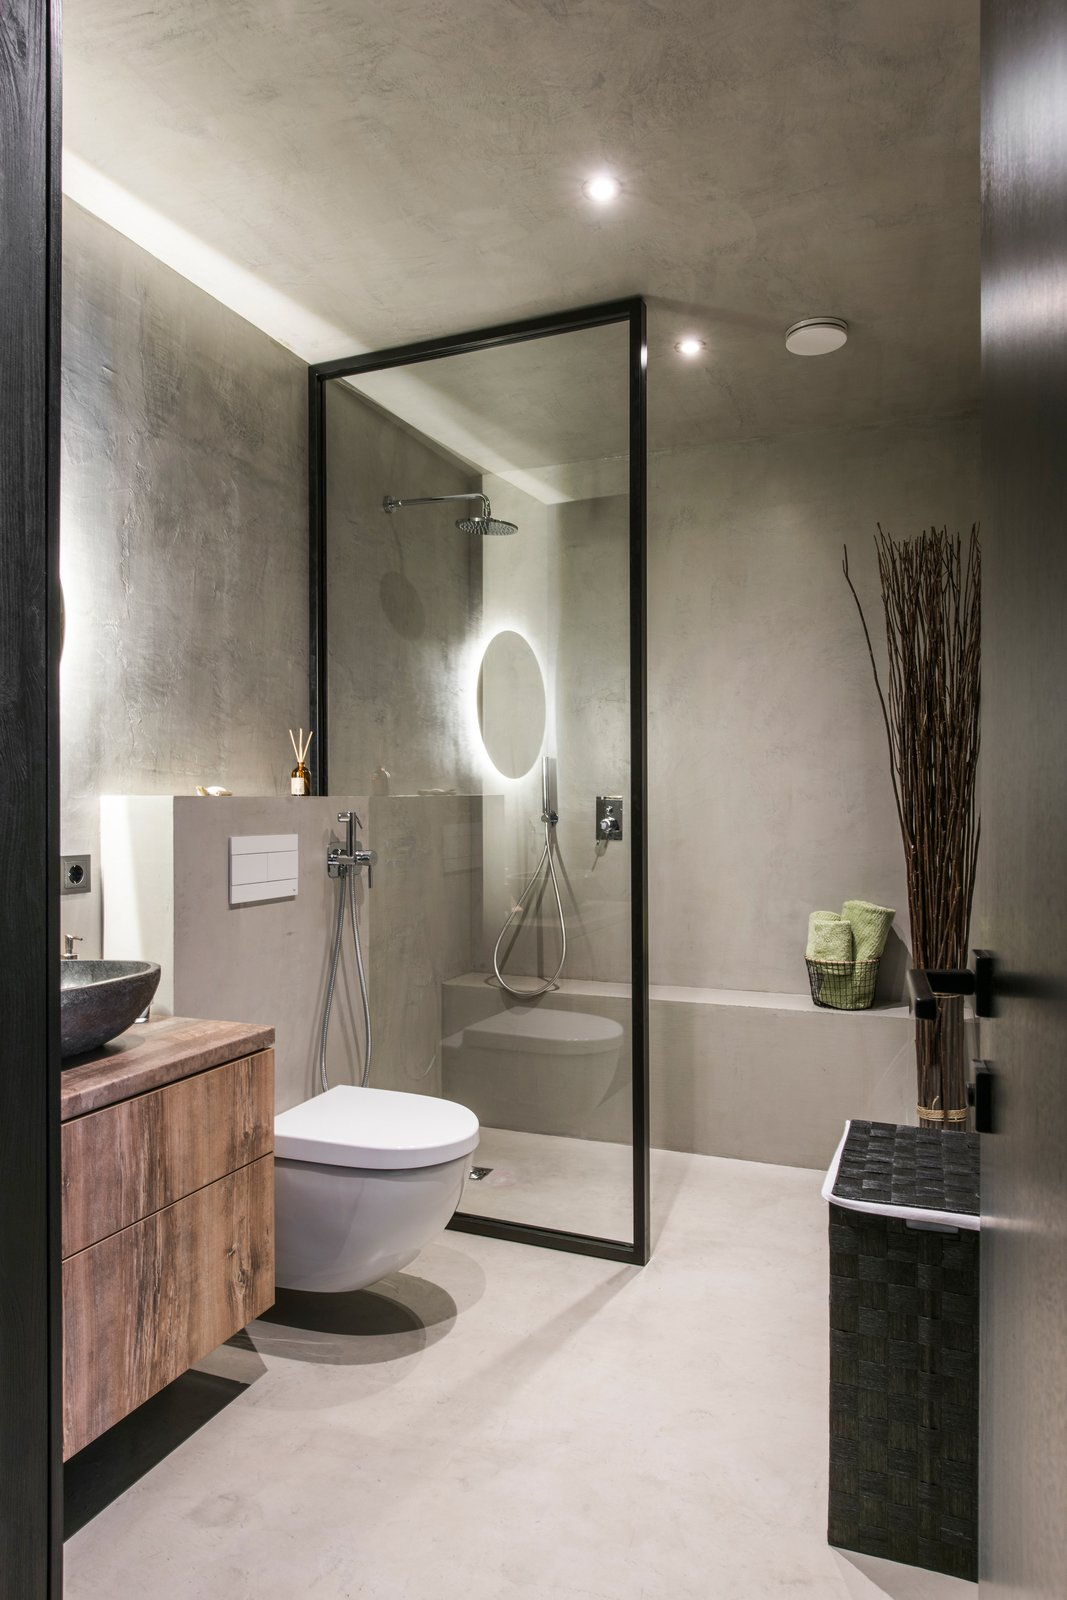 Bath, Concrete, Vessel, Laminate, Open, Accent, Ceiling, Concrete, and One Piece  Best Bath Accent Open Photos from Drills&Hollywood